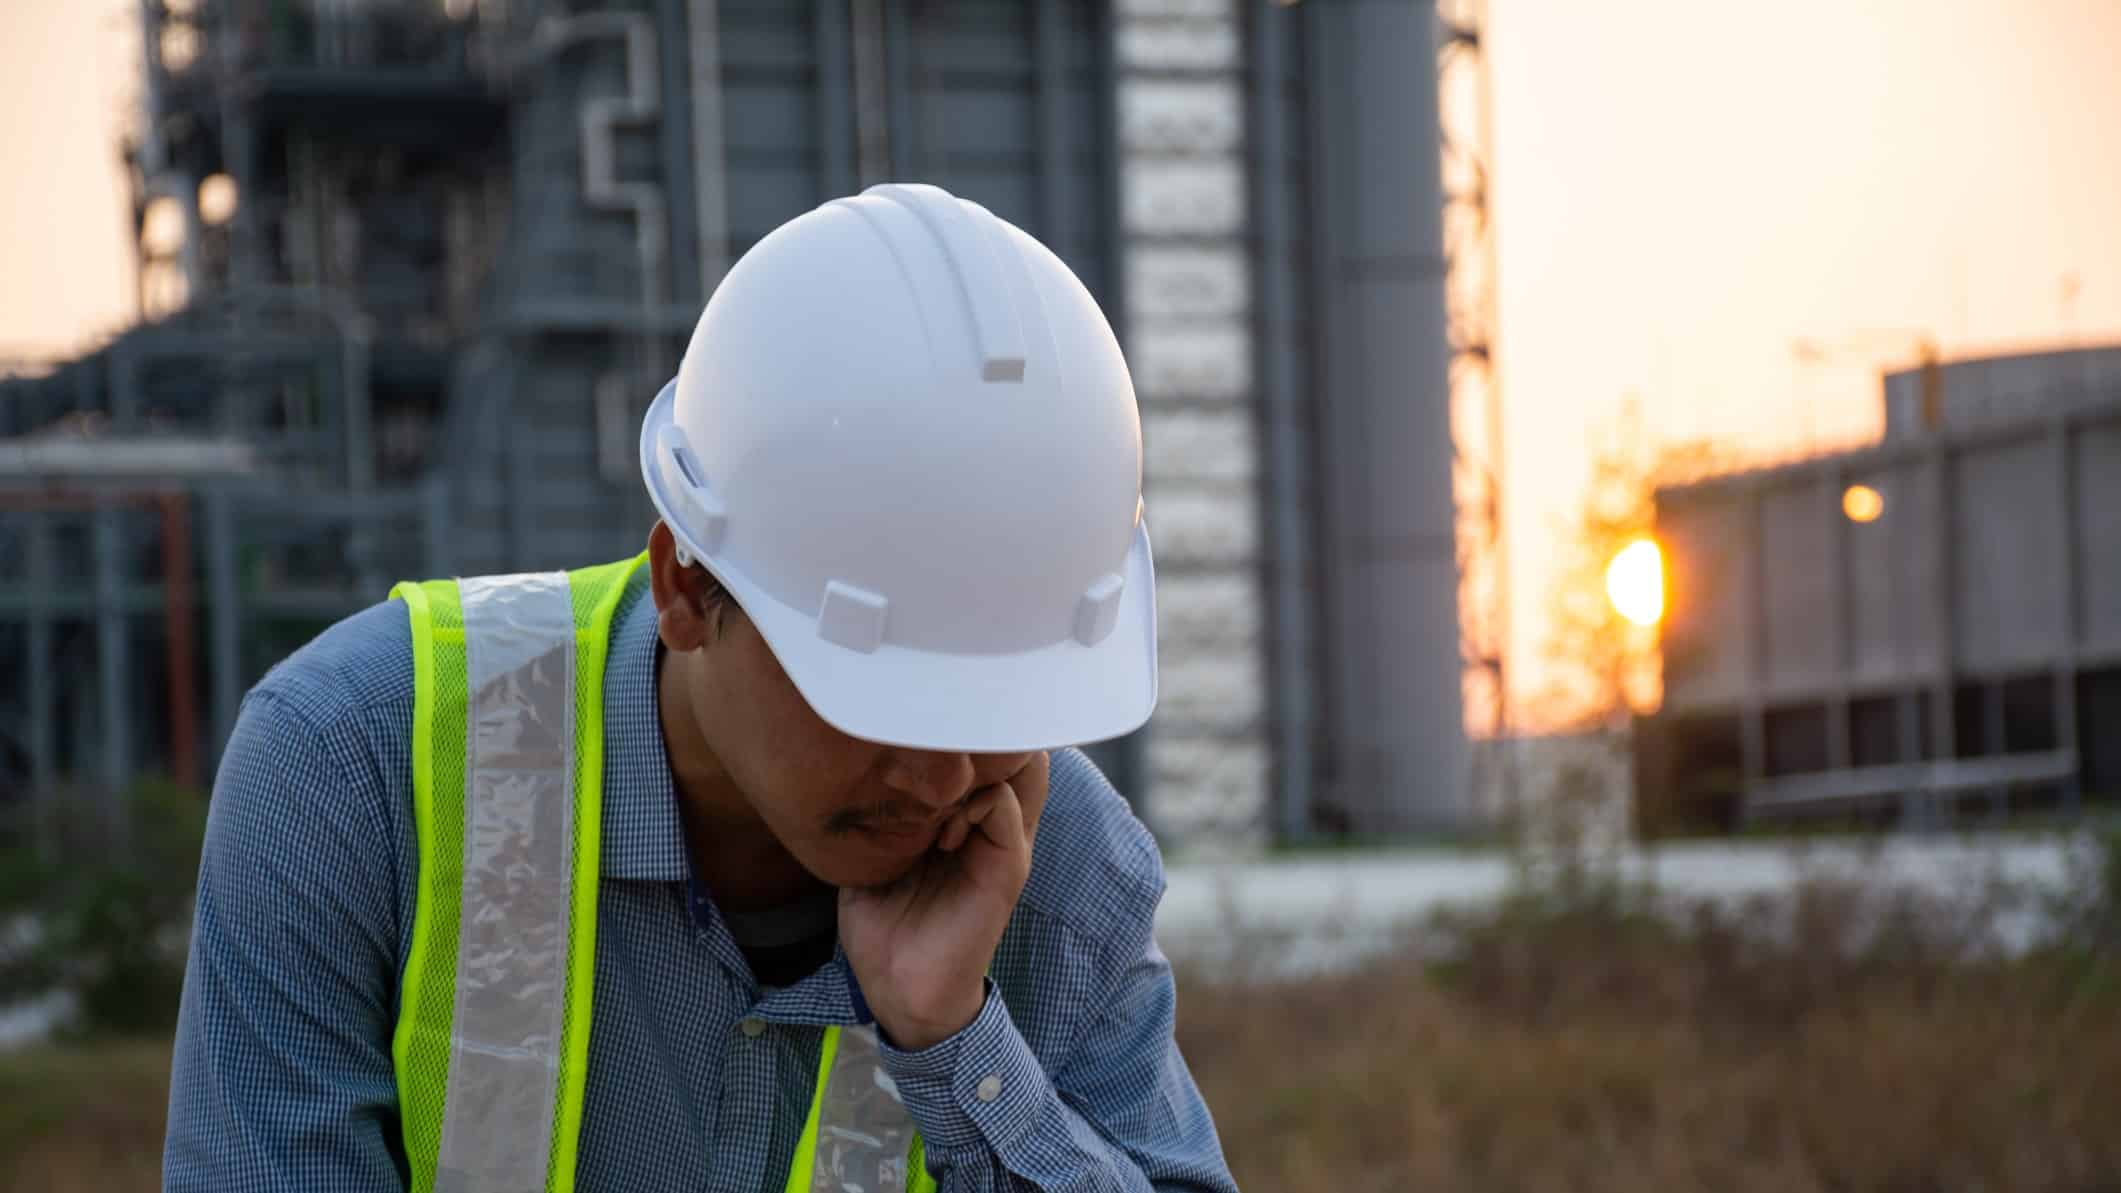 falling infrastructure asx share price represented by disheartened looking builder on work site